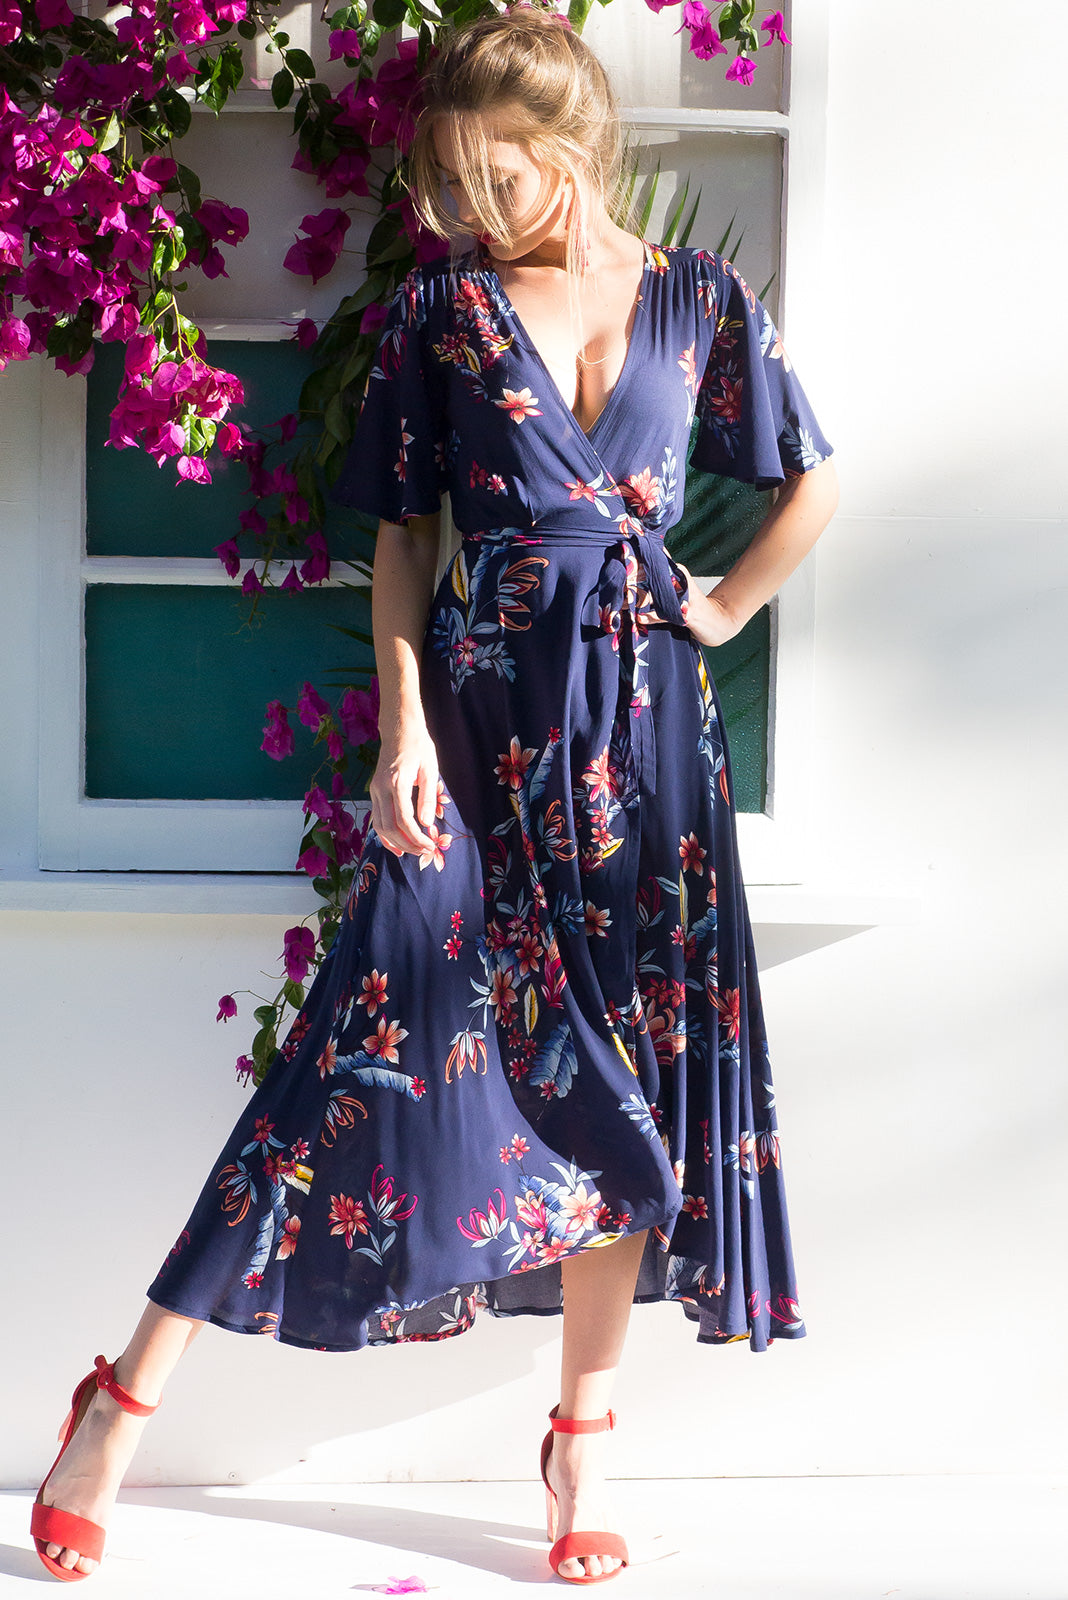 Petal Newport Navy Maxi Wrap dress with flutter sleeves and bright navy and floral print on rayon fabric